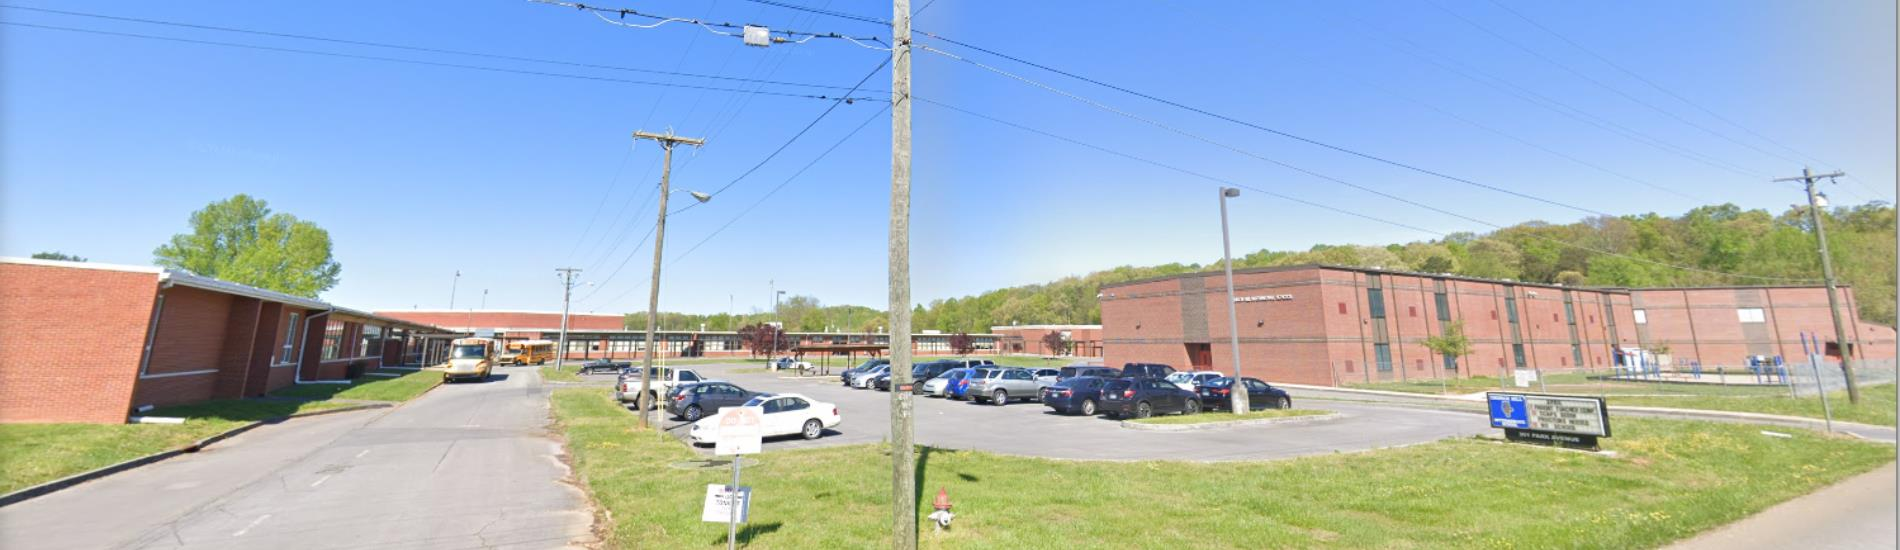 Church Hill Intermediate School building 2